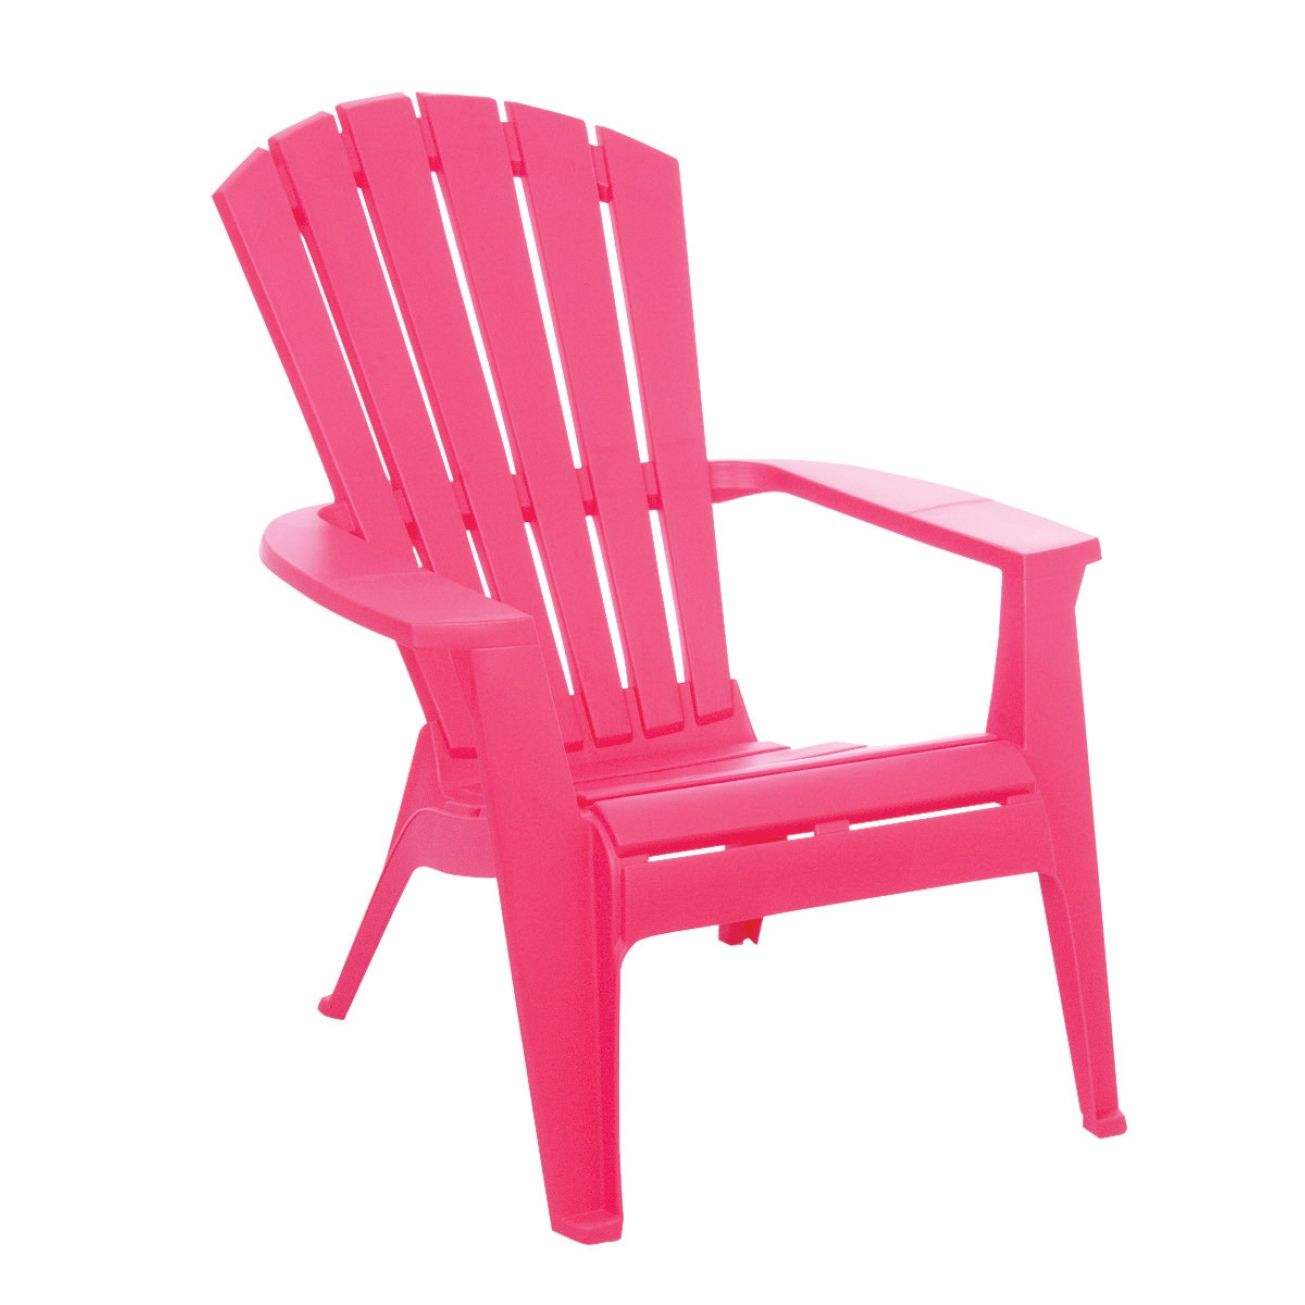 20+ Pink Plastic Adirondack Chairs   Cool Modern Furniture Check More At  Http:/